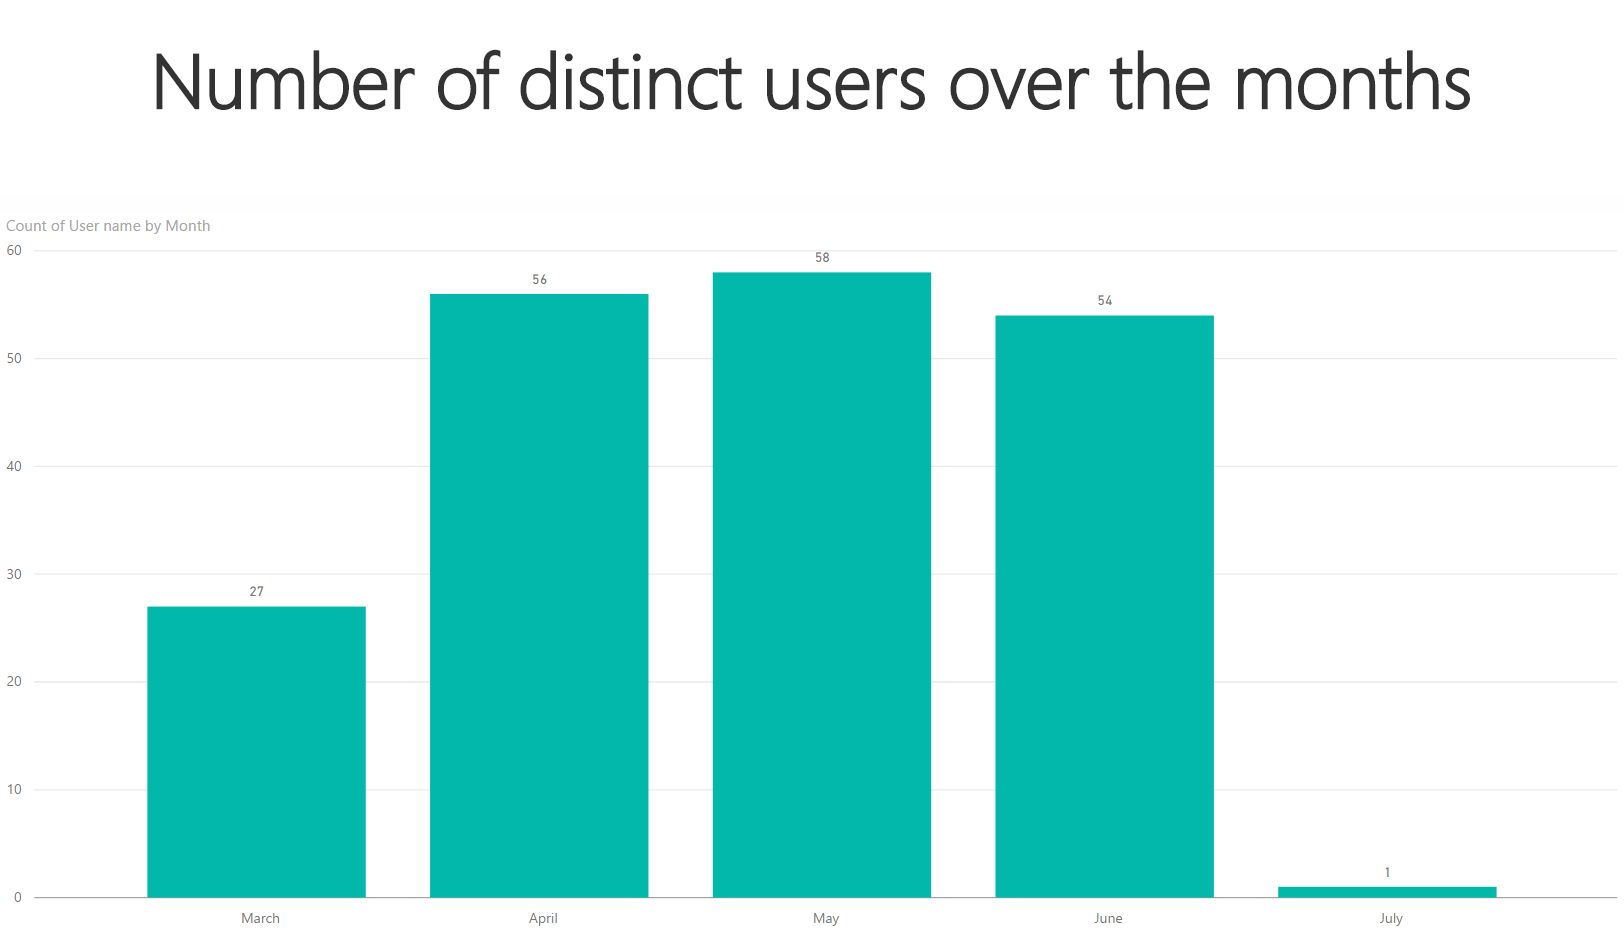 SSAS Number of distinct users over the months